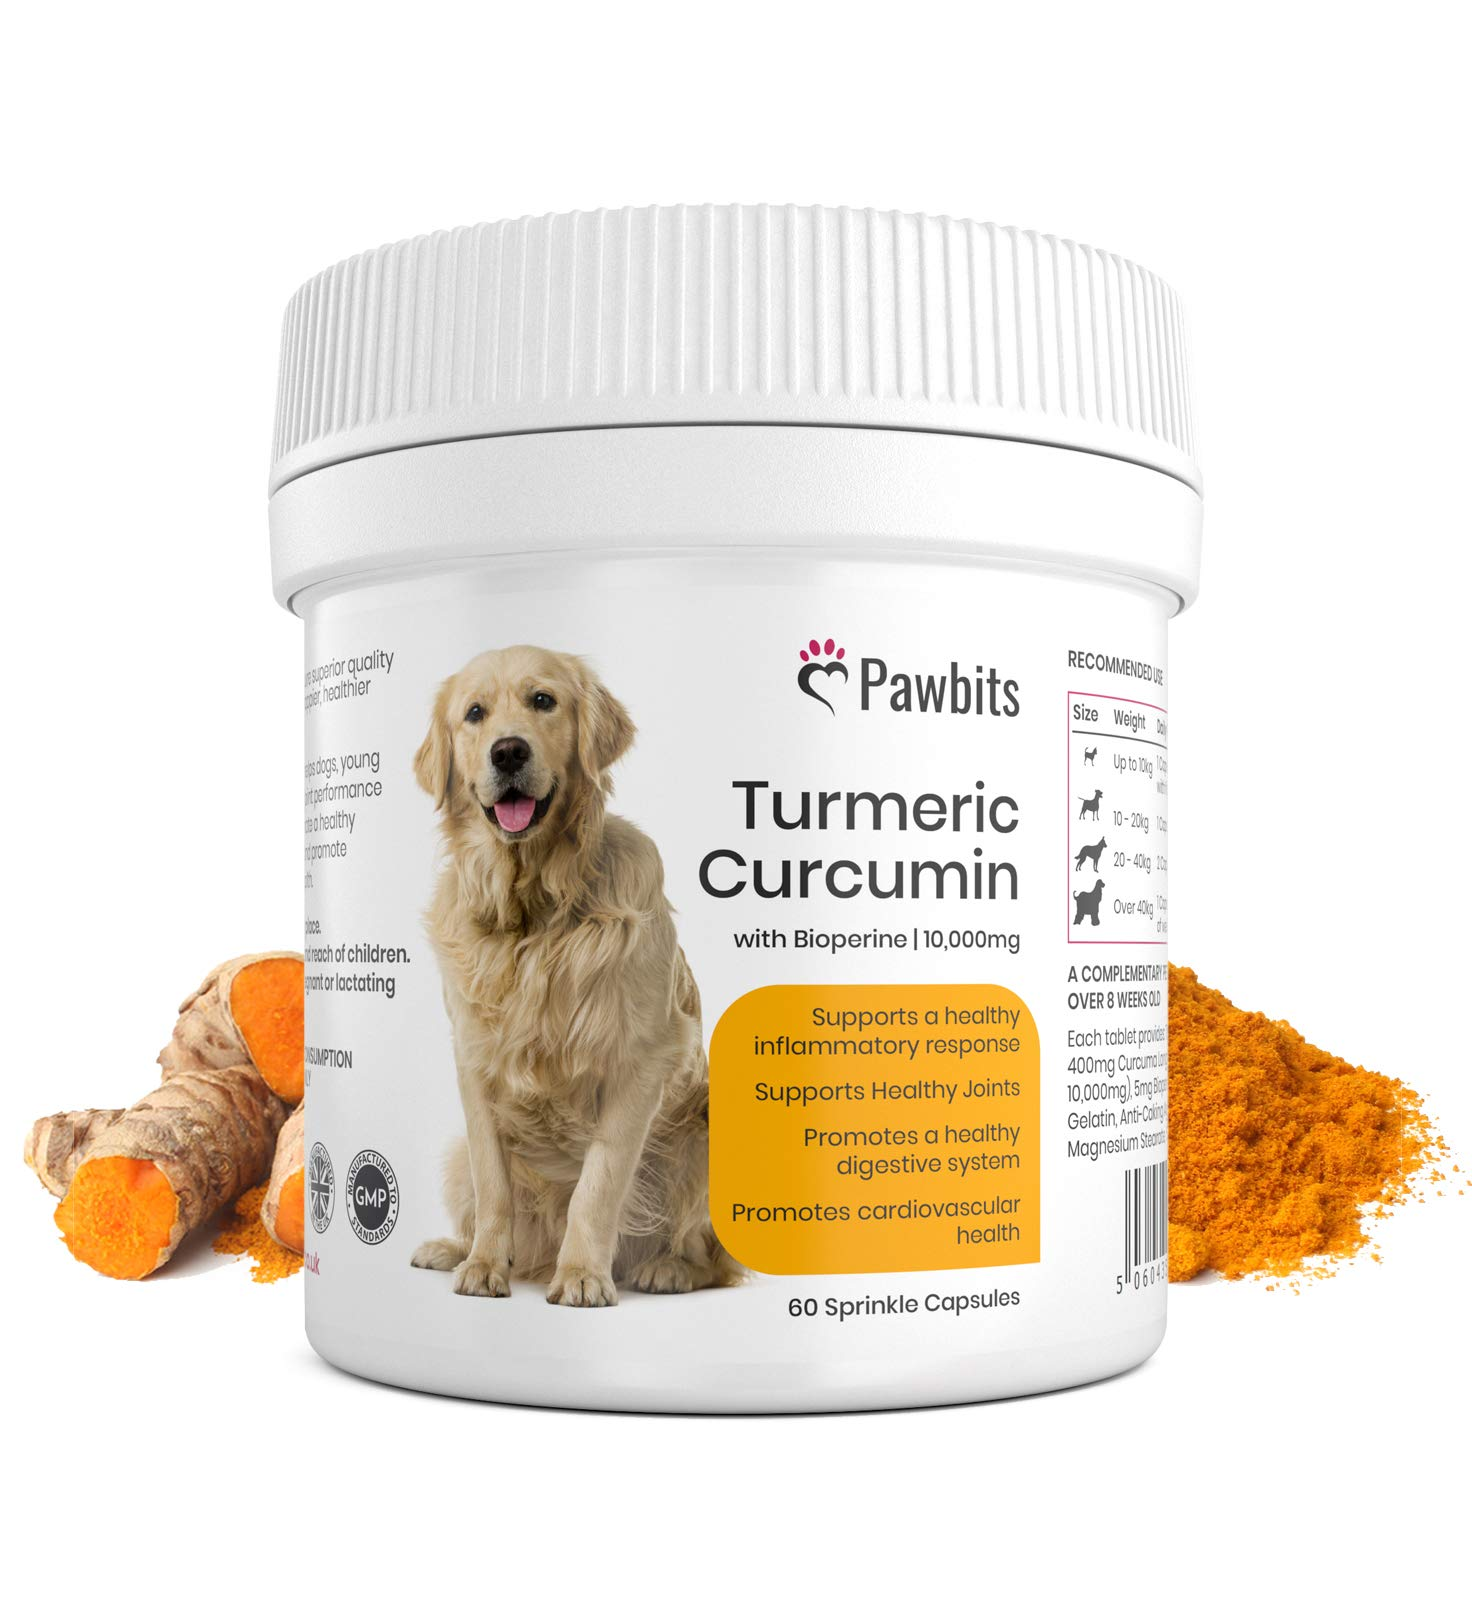 Turmeric for Dogs 500mg extract 10,000mg equivalent for Dogs 60 Sprinkle Capsules Turmeric with Piperine | Helps Support Joints and Hips | Pawbits Turmeric Aids Pain Relief For Dogs | UK Manufactured